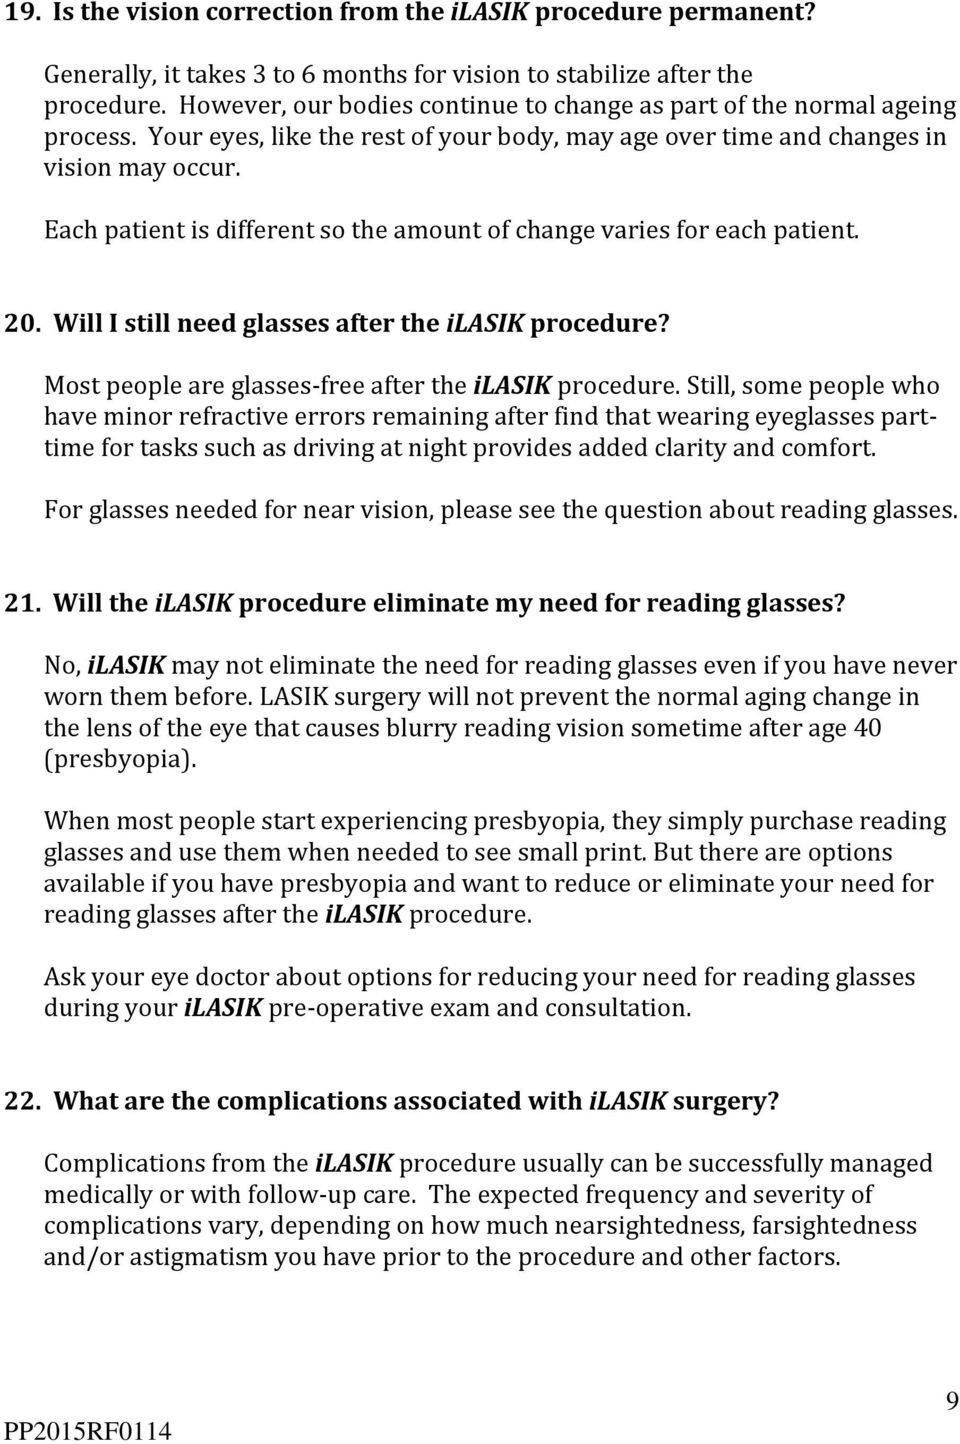 Each patient is different so the amount of change varies for each patient. 20. Will I still need glasses after the ilasik procedure? Most people are glasses-free after the ilasik procedure.